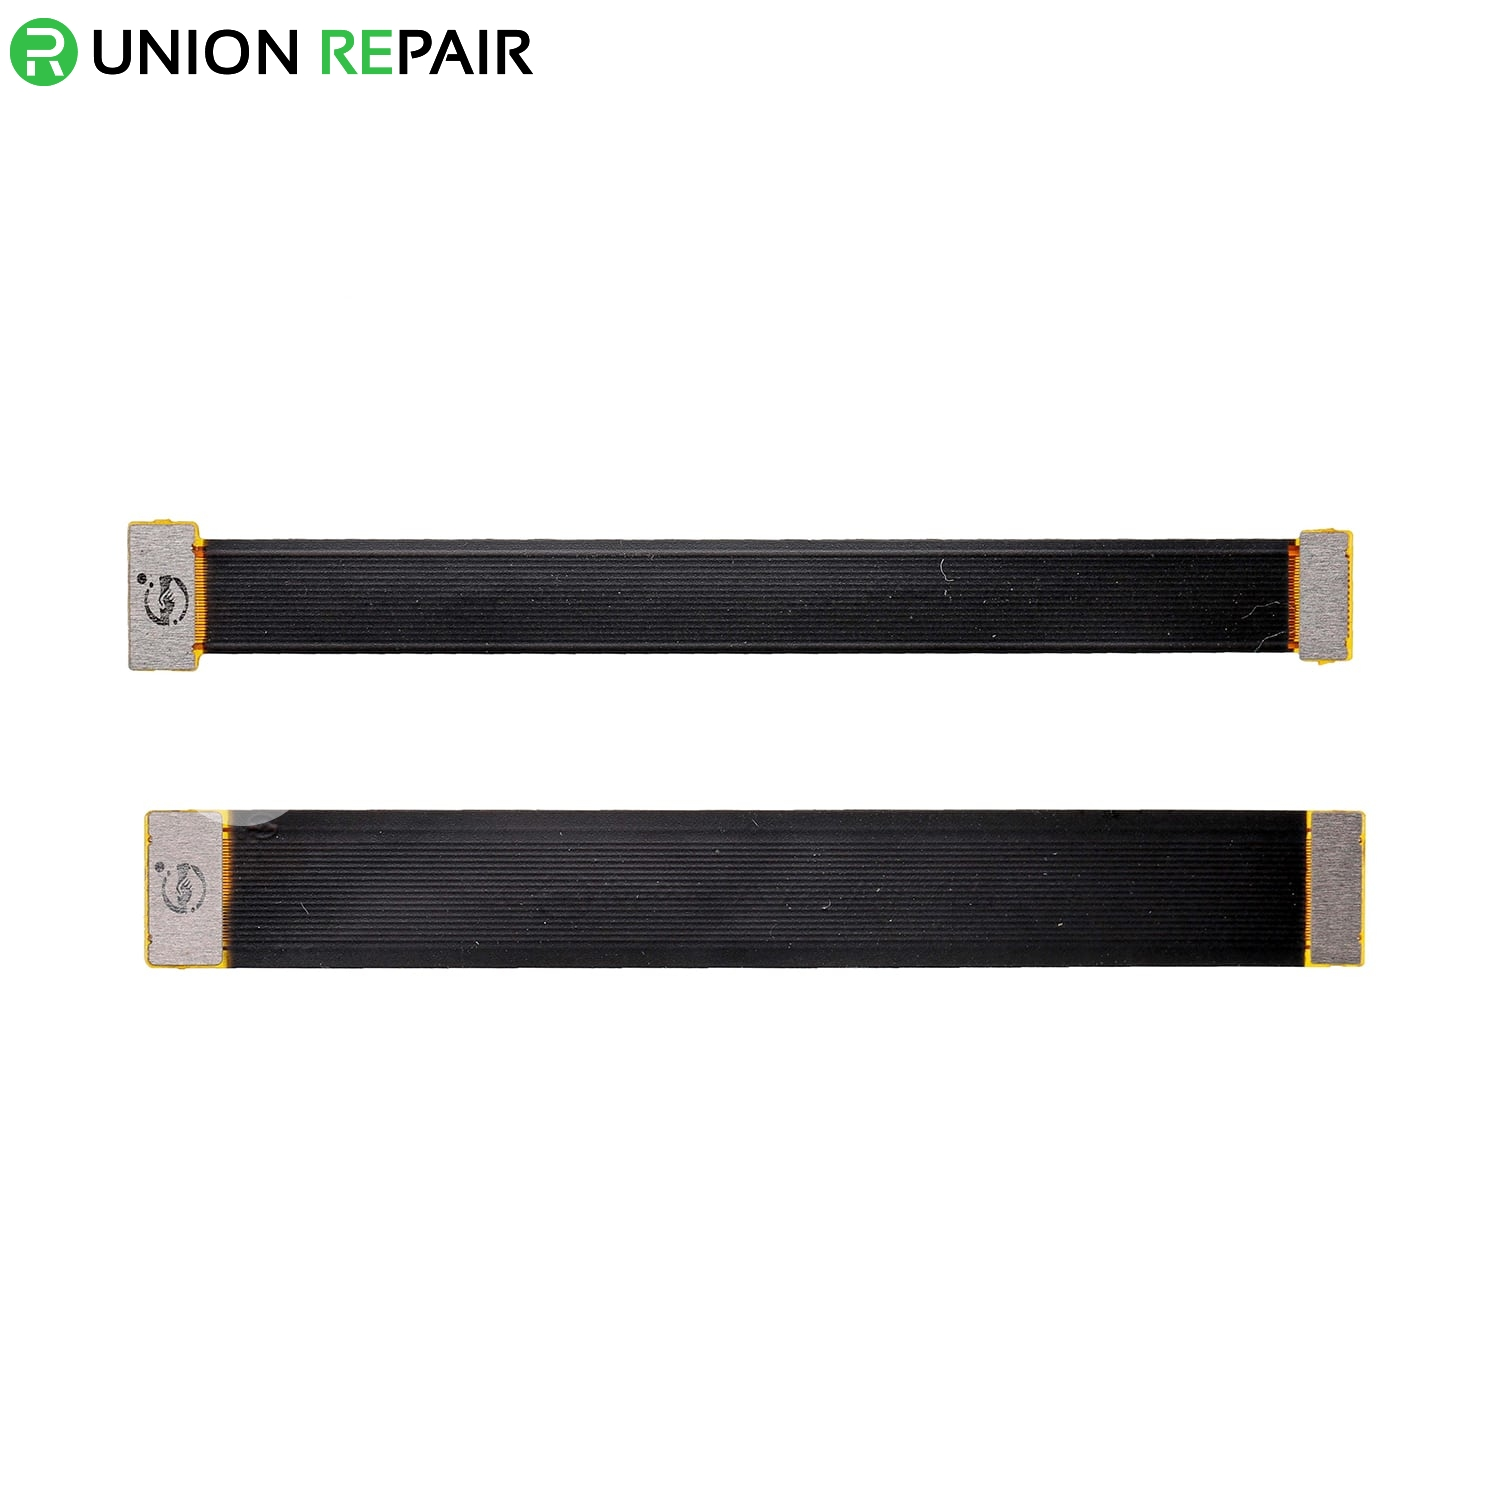 3D/LCD Screen Testing Cable for iPhone X/XS